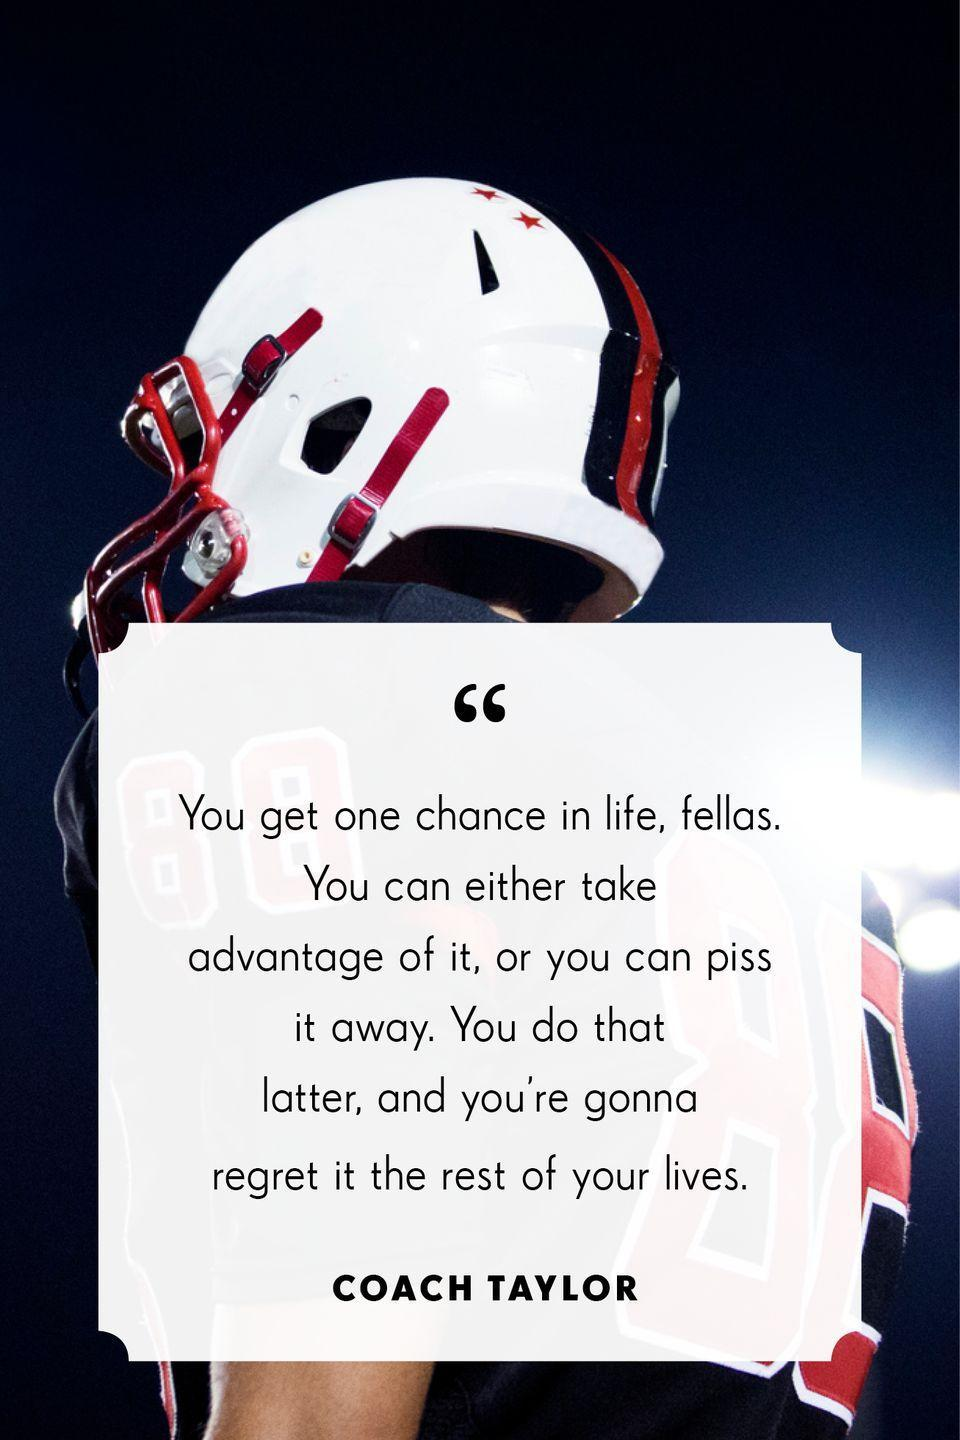 """<p>""""You get one chance in life, fellas. You can either take advantage of it, or you can piss it away. You do that latter, and you're gonna regret it the rest of your lives.""""</p>"""